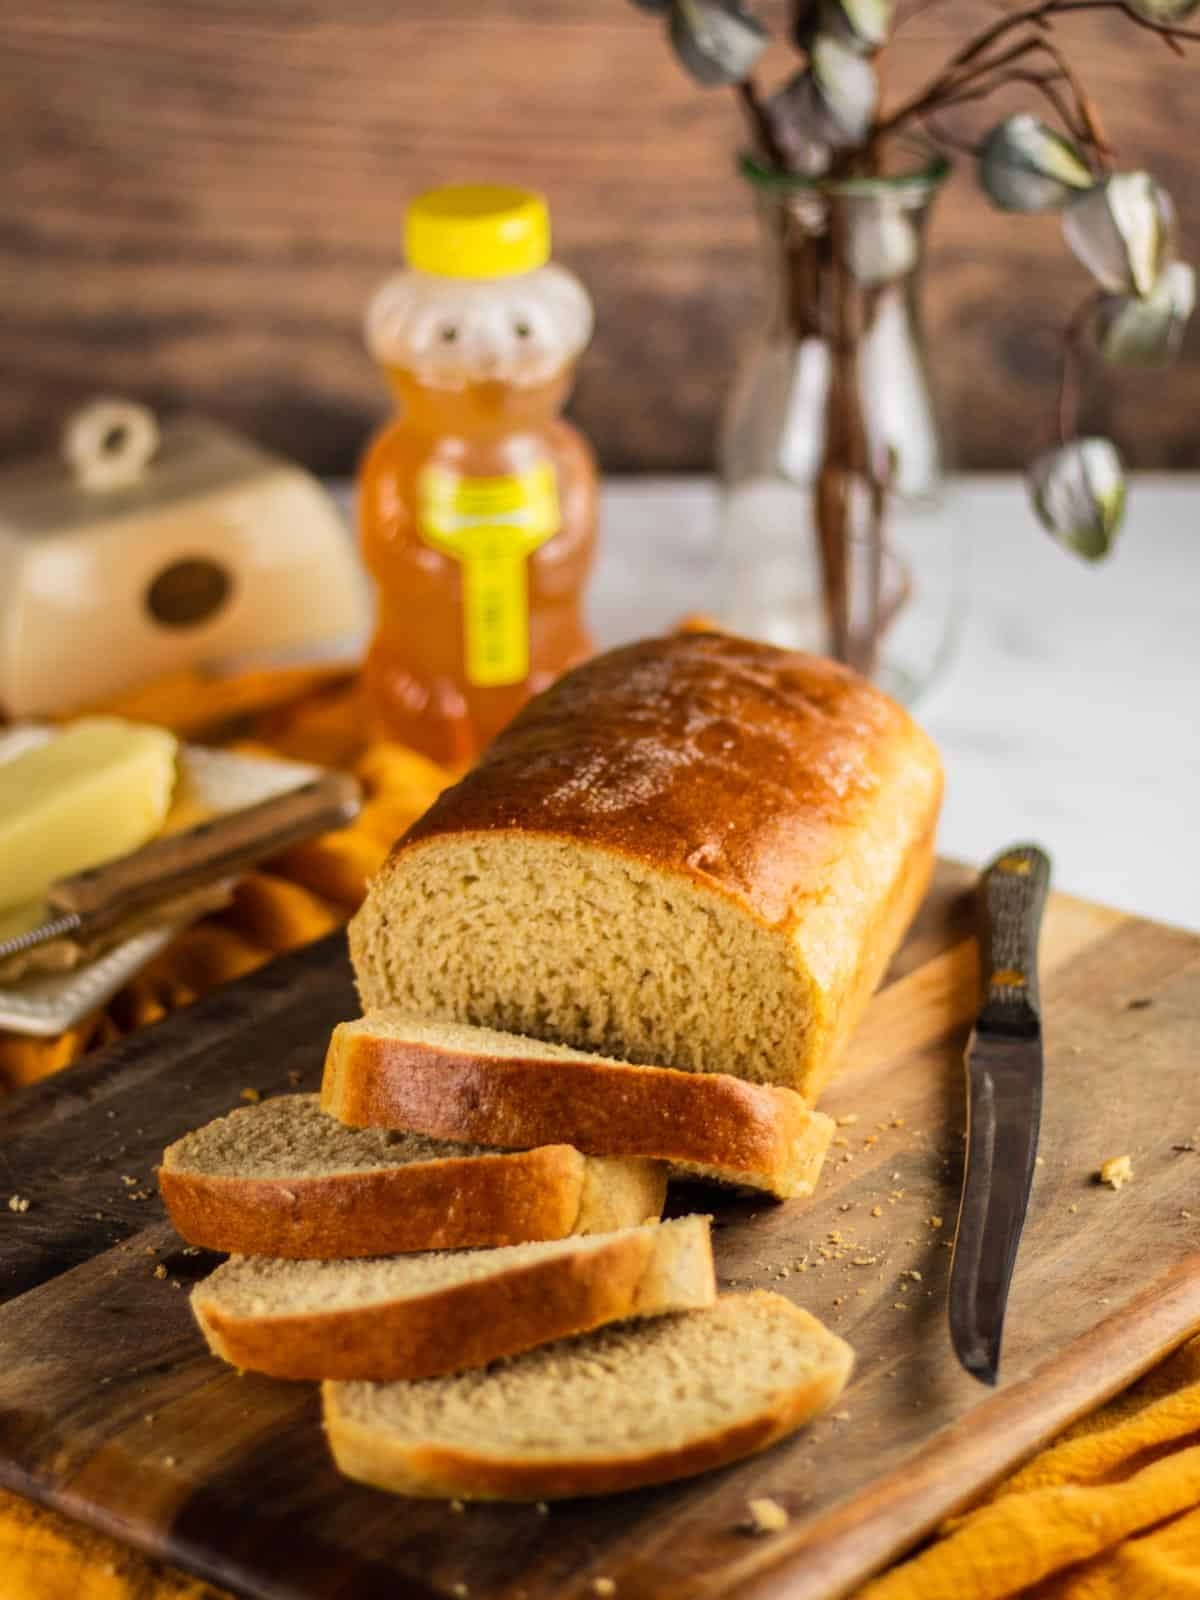 loaf of bread sliced on a wooden cutting board with knife, butter and honey